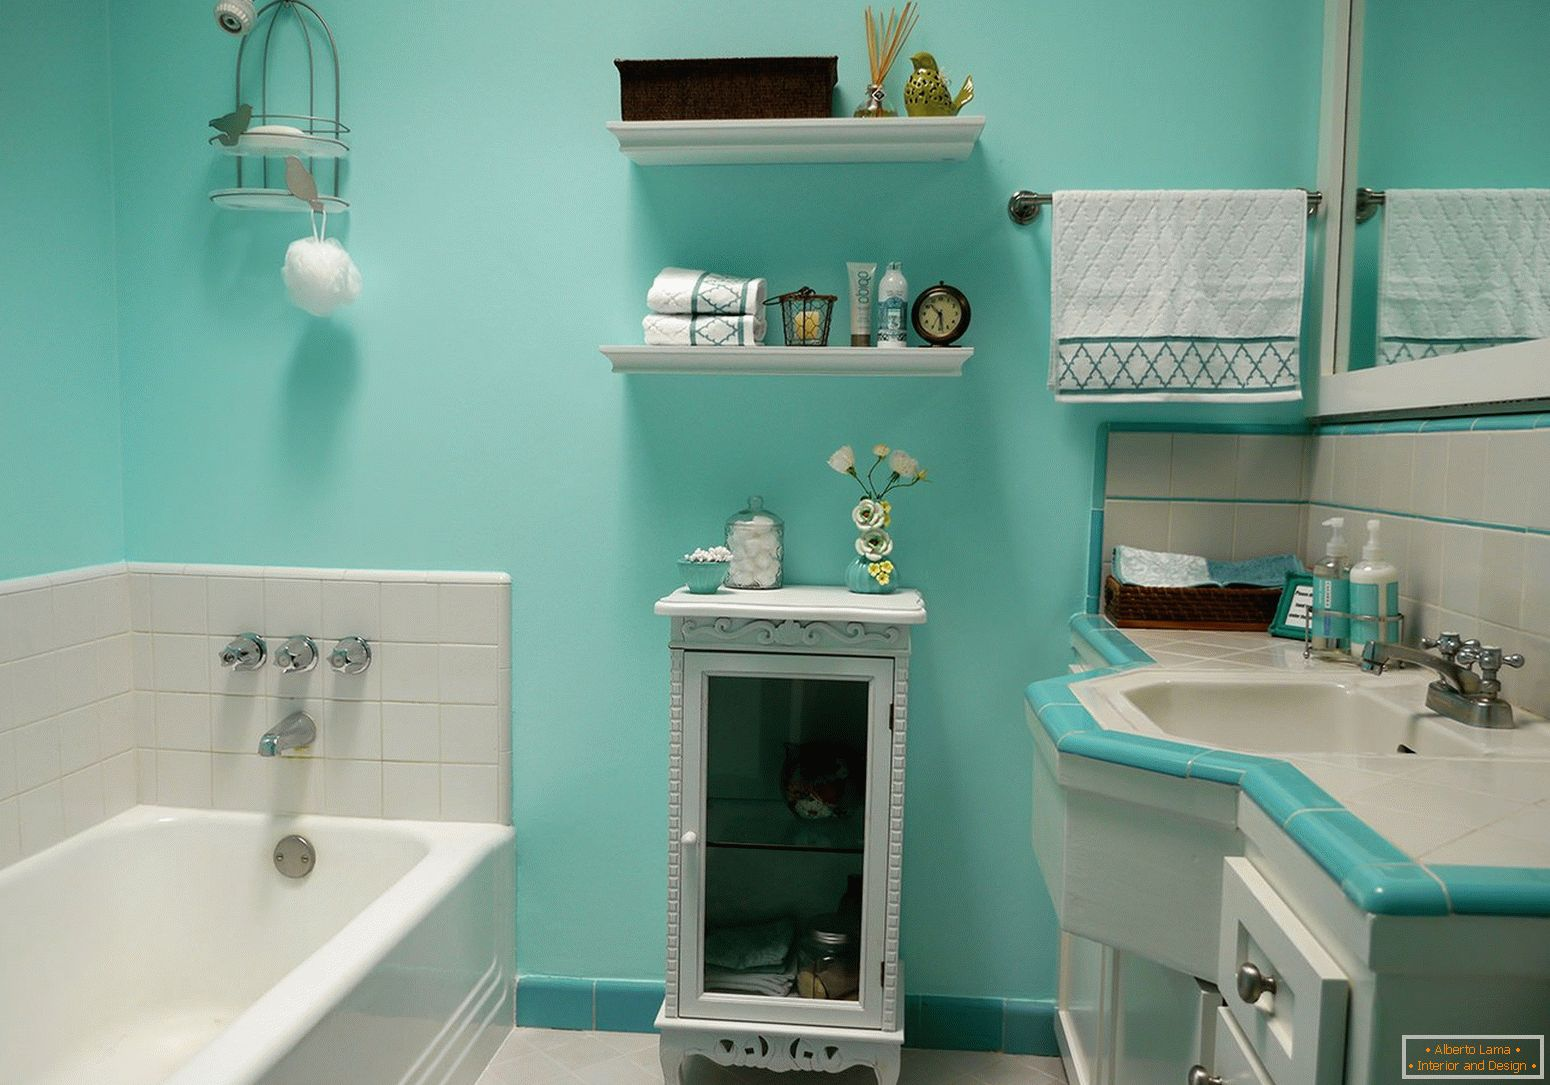 Turquoise walls in the bathroom